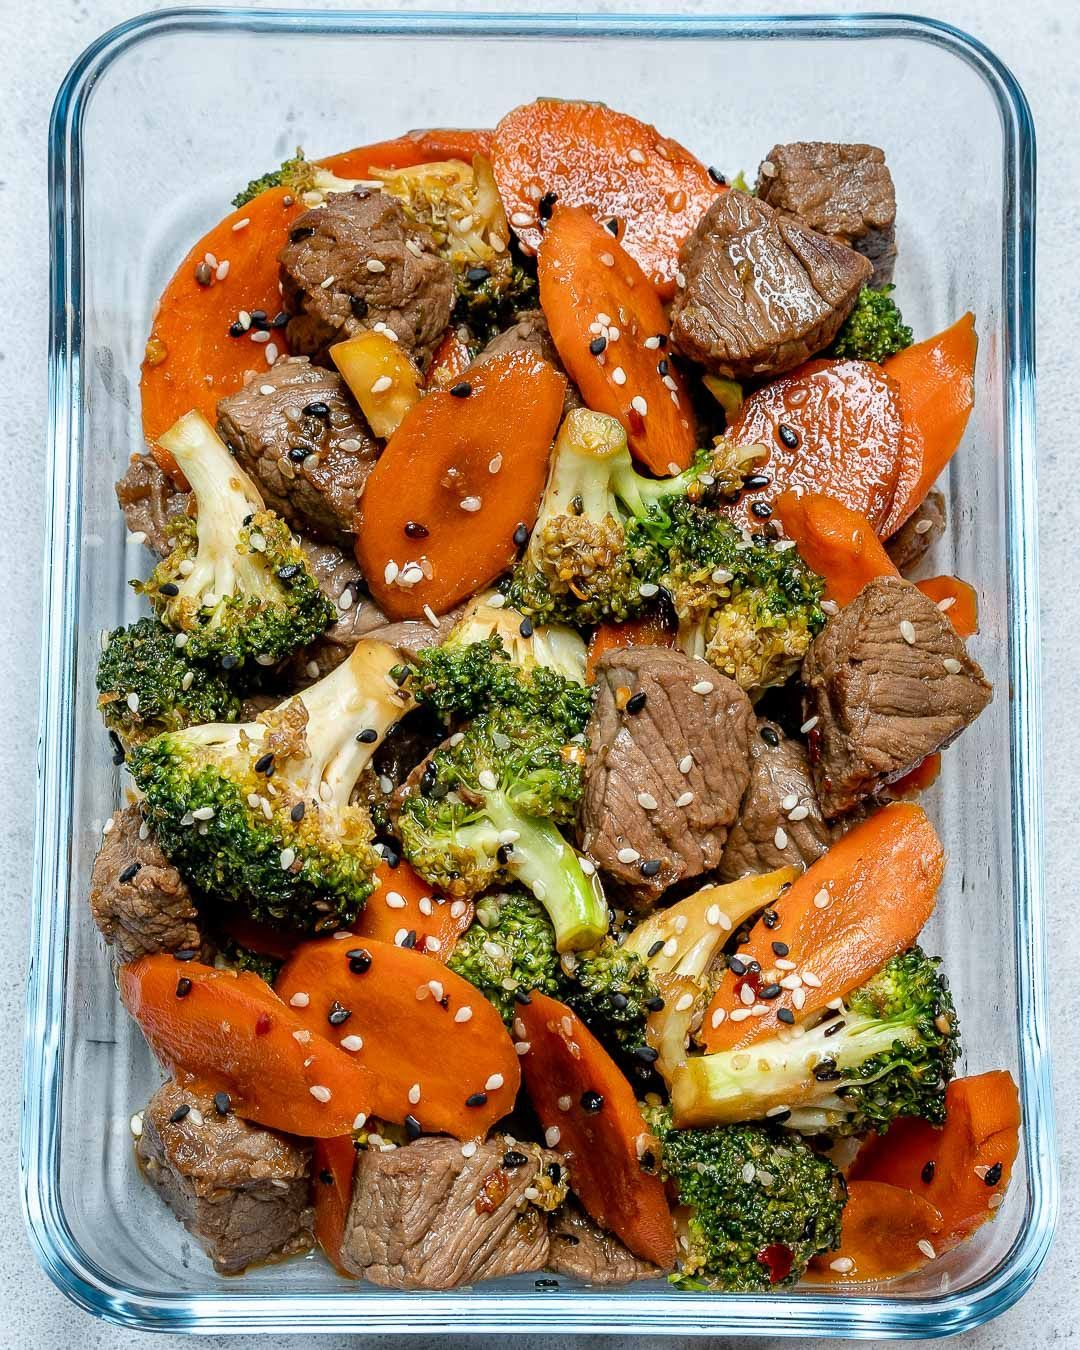 Super Easy Beef Stir Fry for Clean Eating Meal Prep eating breakfast eating dinner eating for beginners eating for weight loss eating grocery list eating on a budget eati...